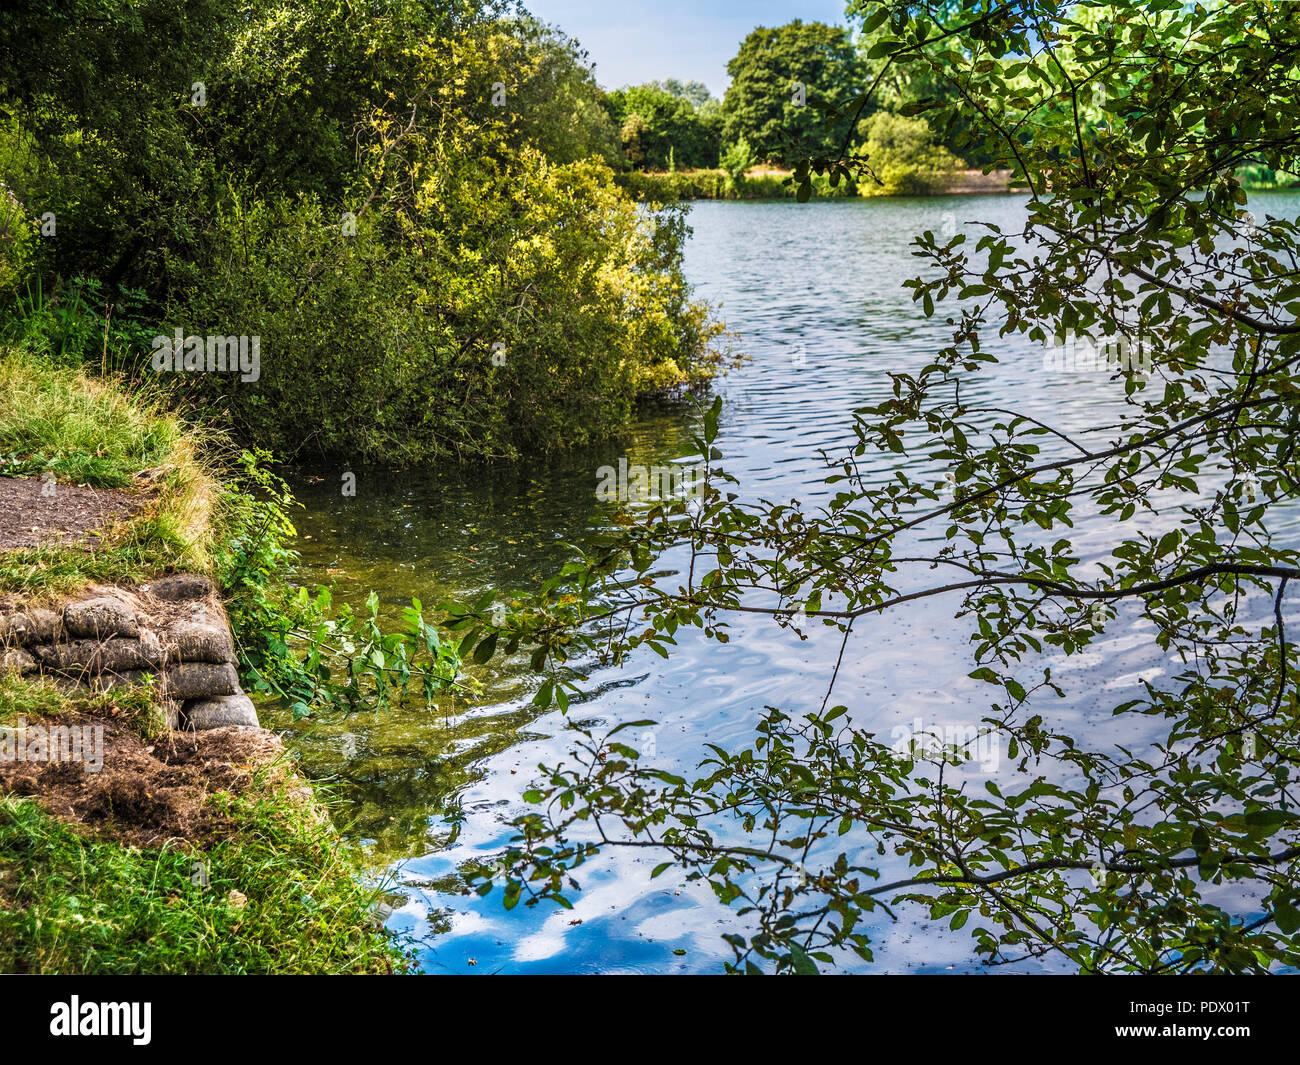 A view of the lake at Neigh Bridge Country Park in Gloucestershire. - Stock Image